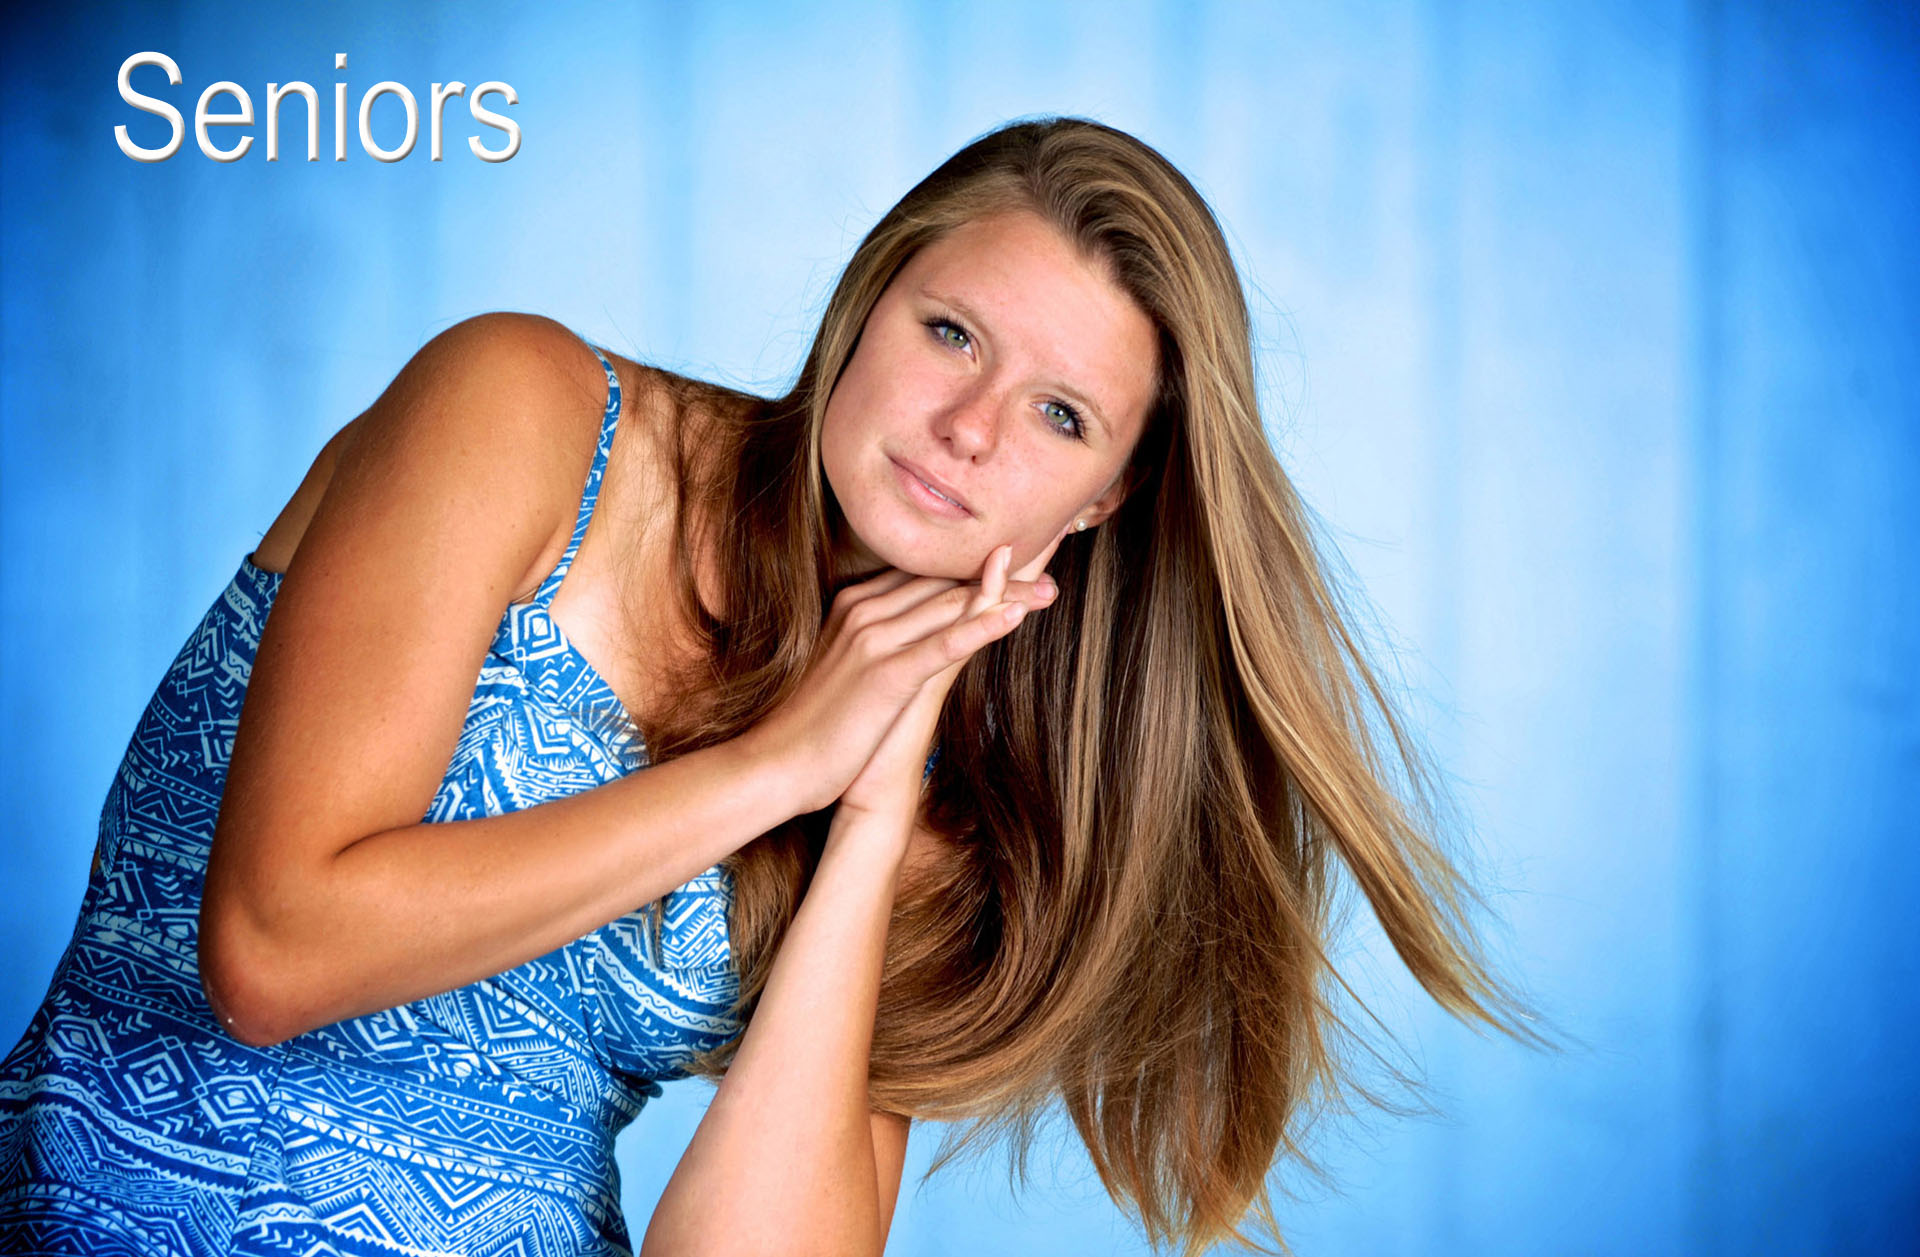 Some Oakland County, Michigan seniors like more glamorous senior photos.